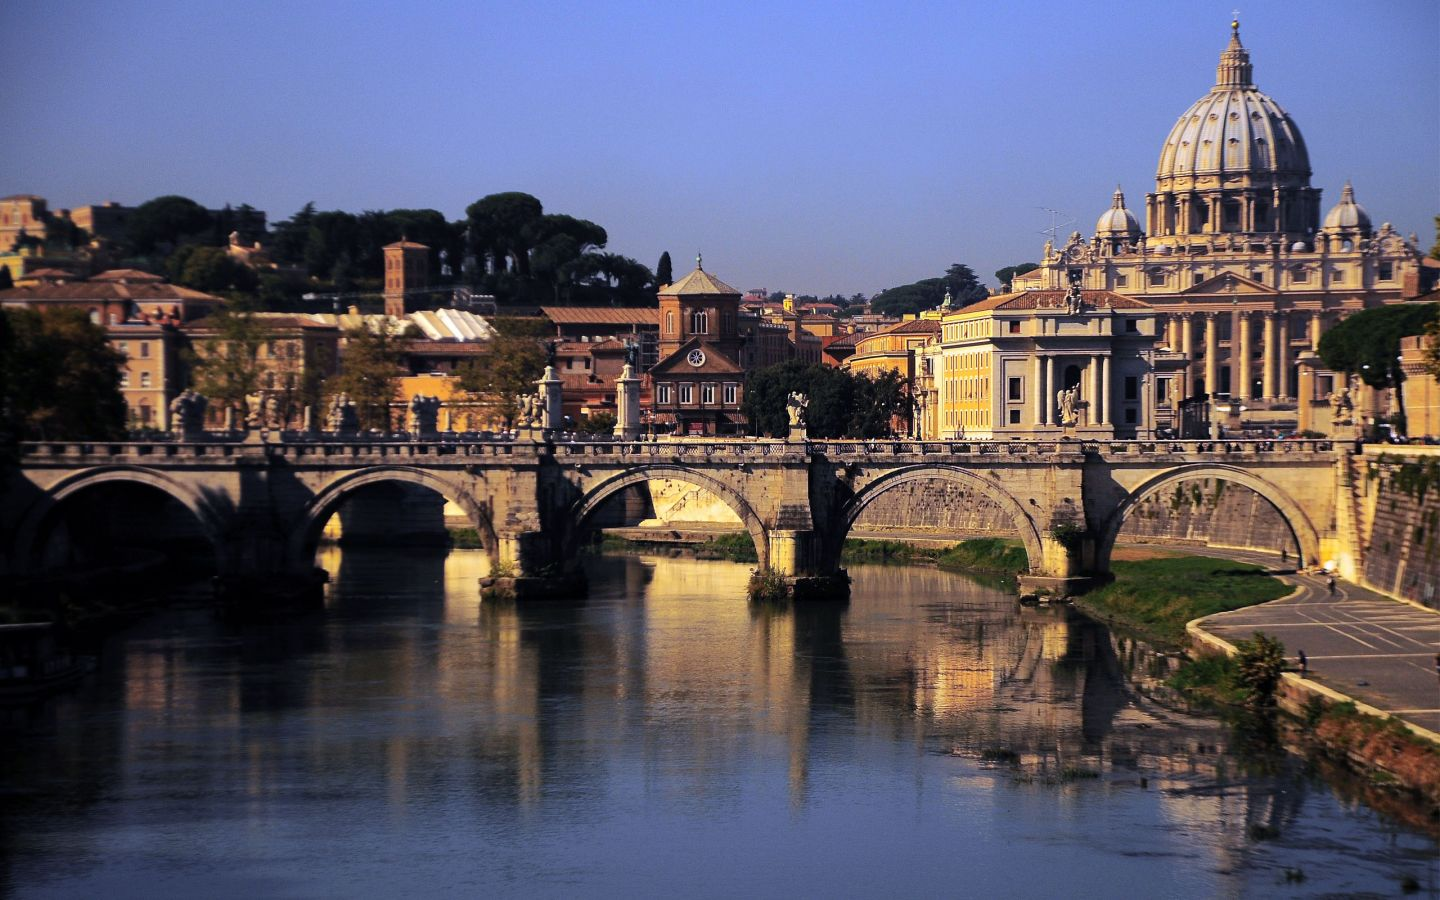 catholic singles in rome Each year dynamic catholic hosts four powerful pilgrimage experiences visit the holy land, rome, lourdes or walk the way of st james traveling the camino de santiago.